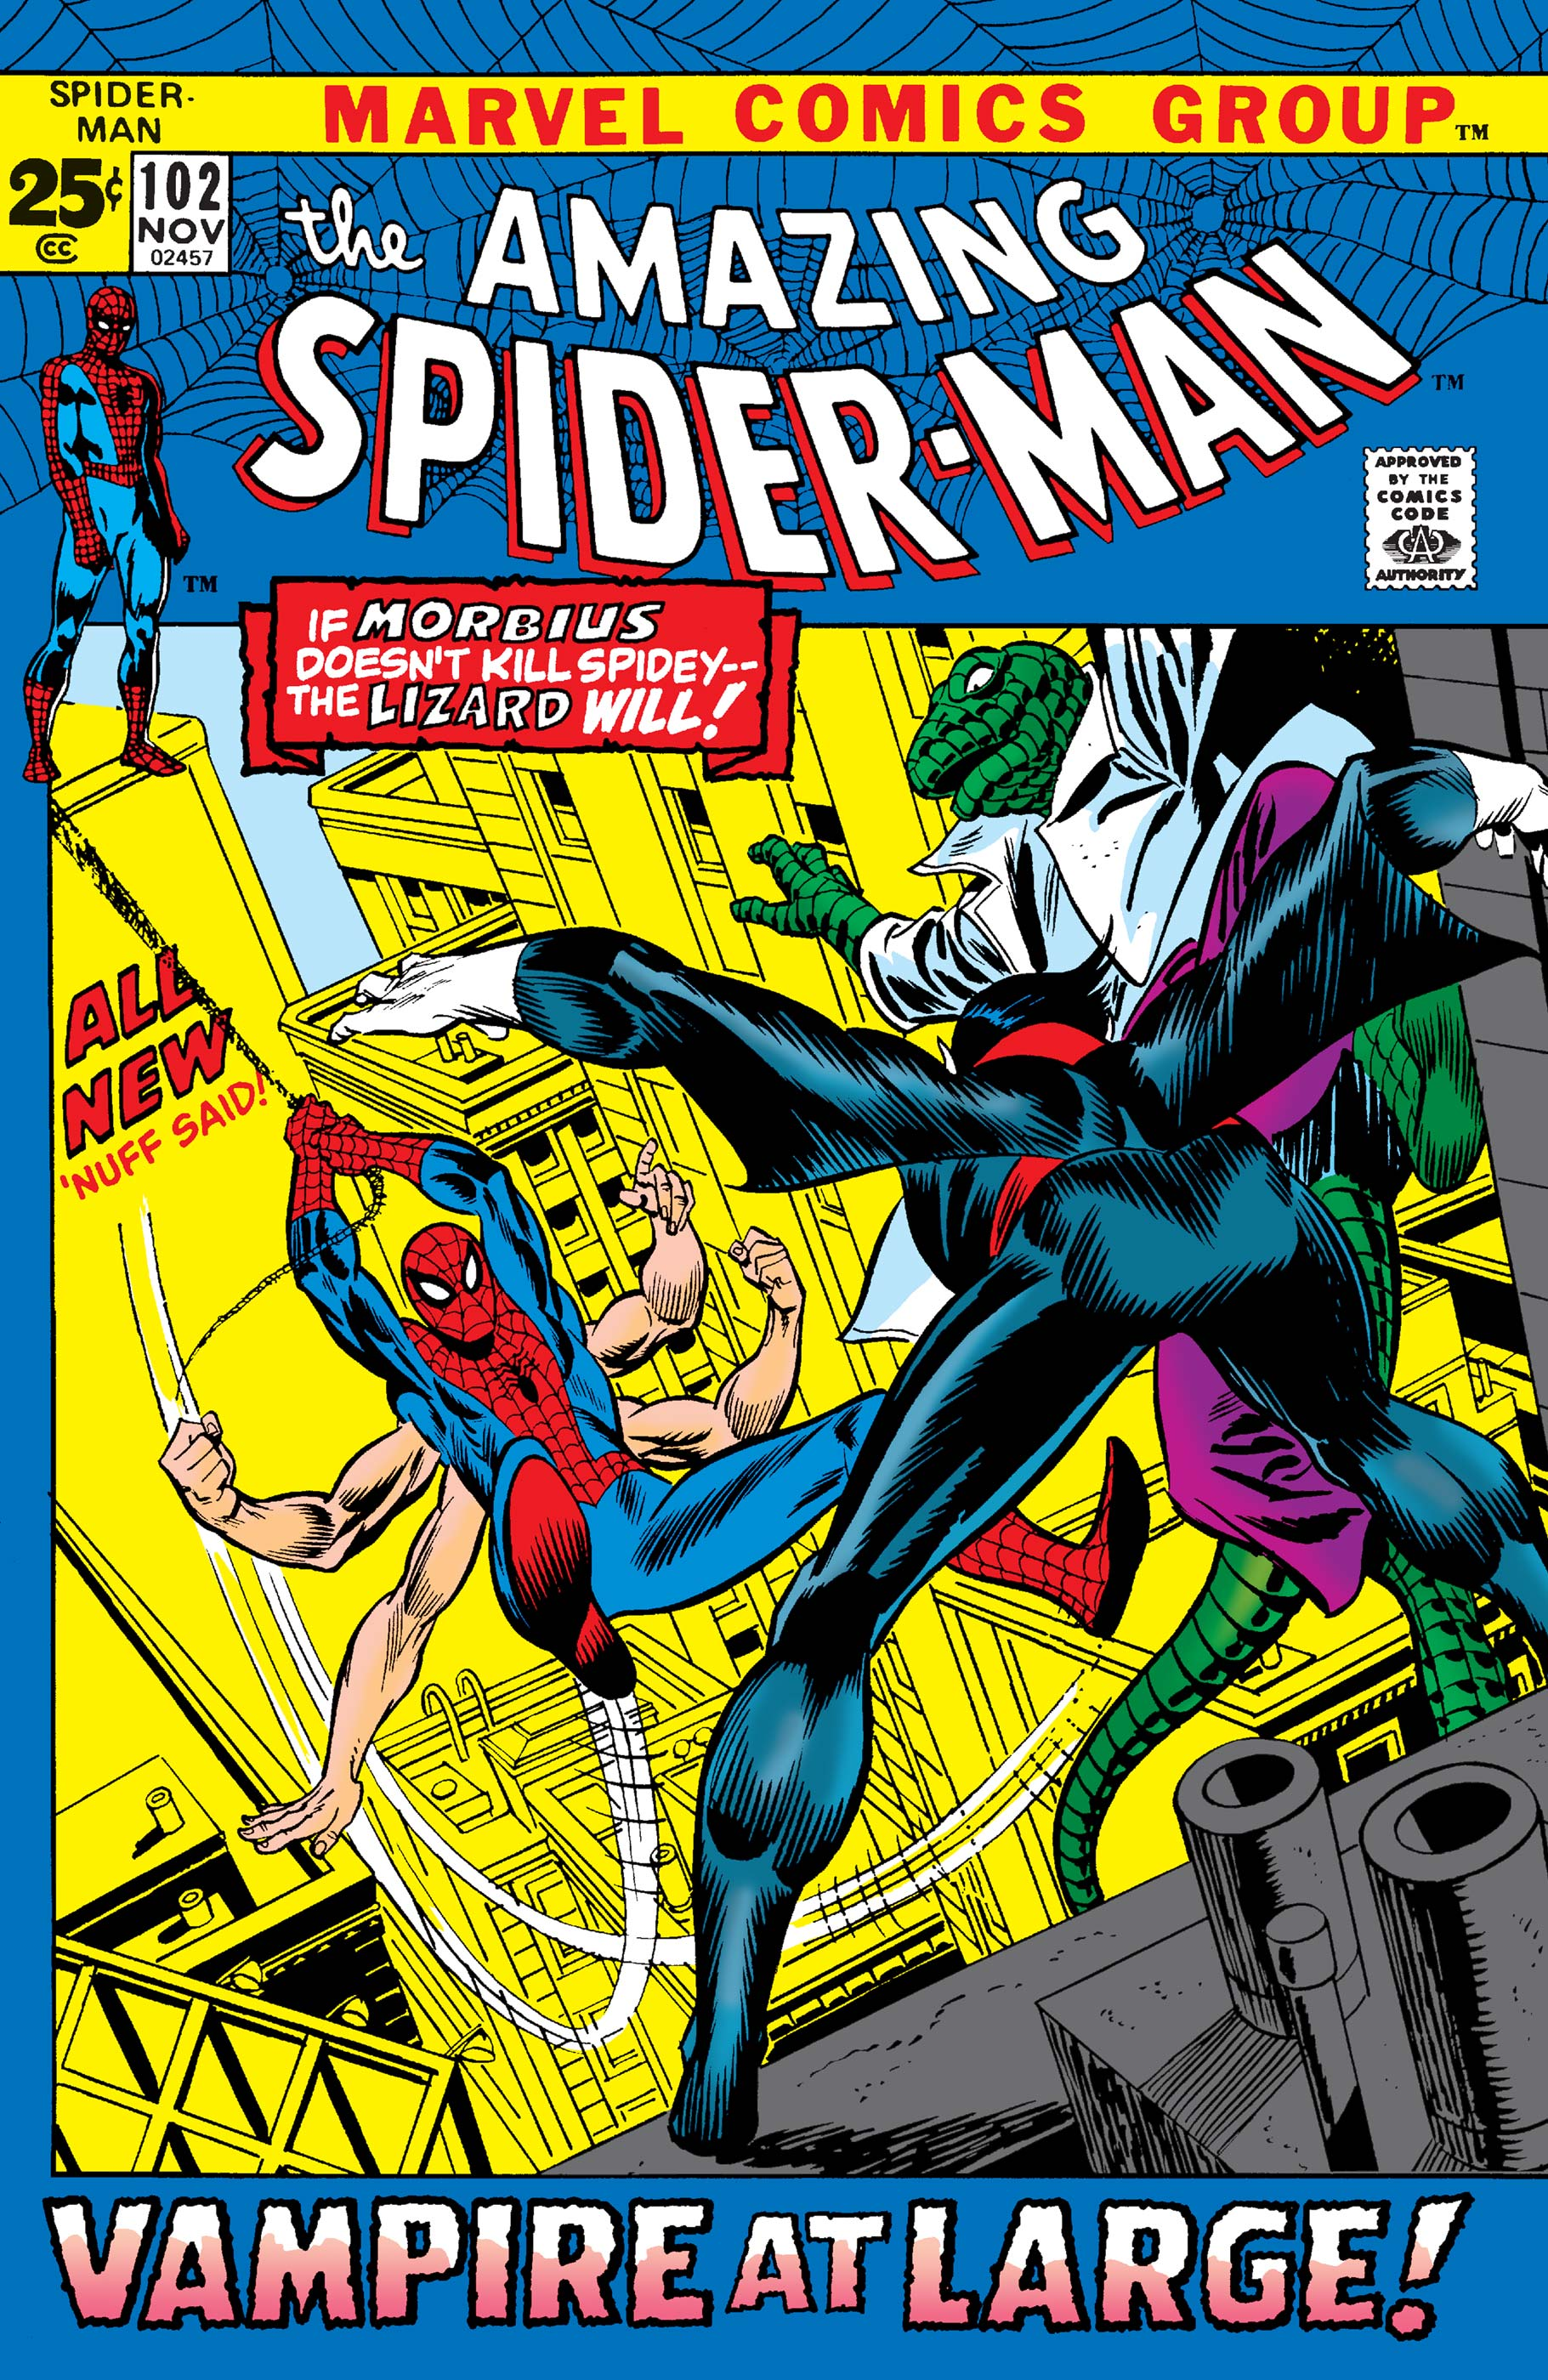 The Amazing Spider-Man (1963) #102